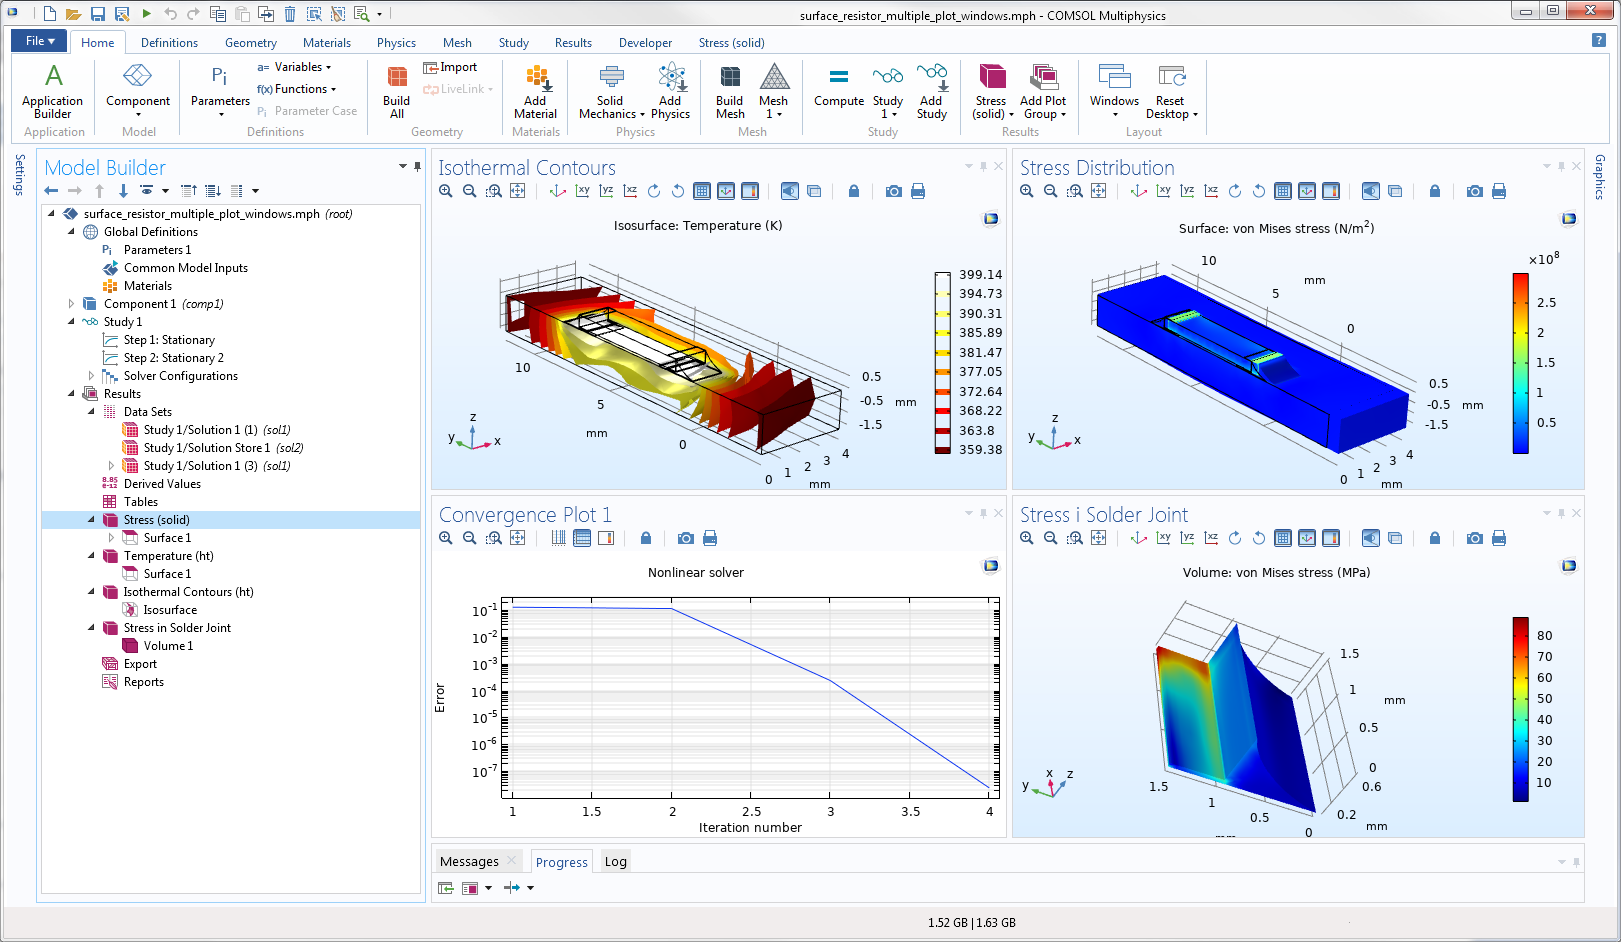 How to Customize the COMSOL Desktop® and Use Keyboard